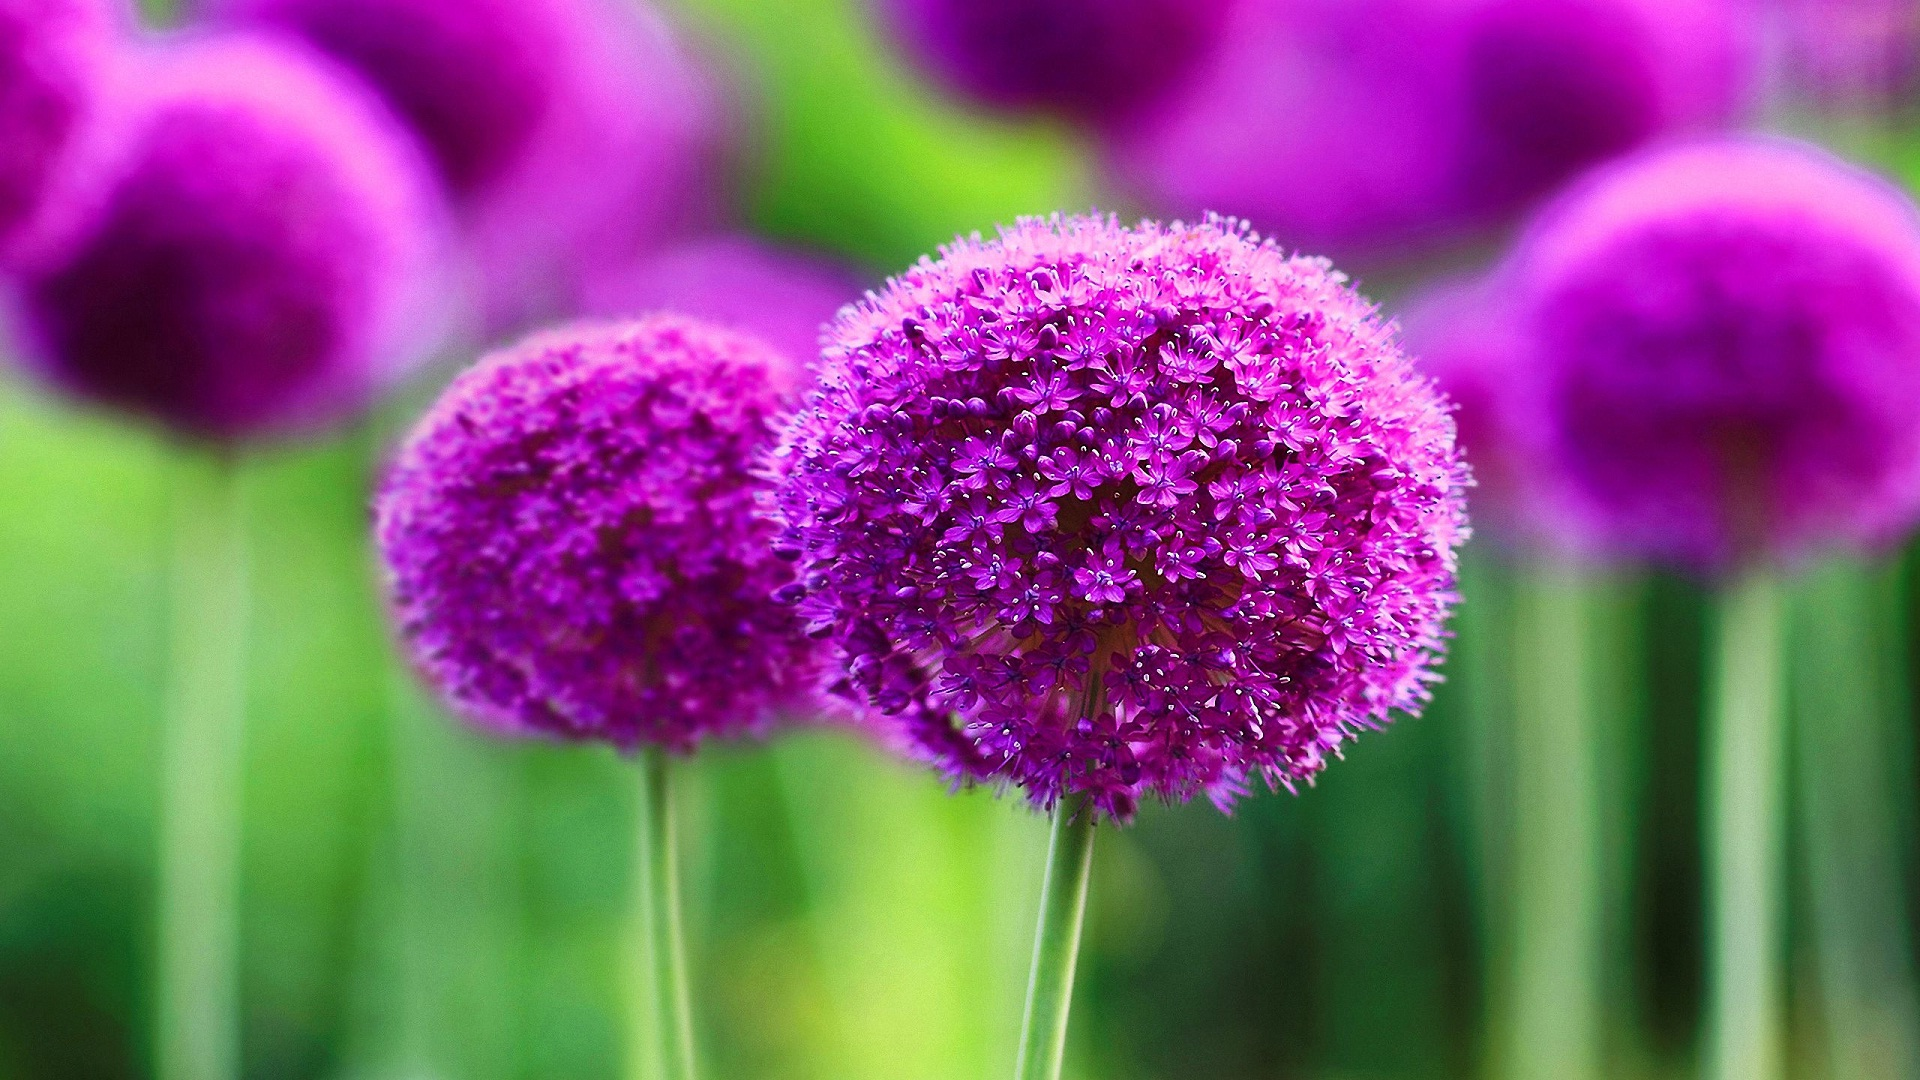 Wallpaper purple flowers most beautiful backgrounds pic download izmirmasajfo